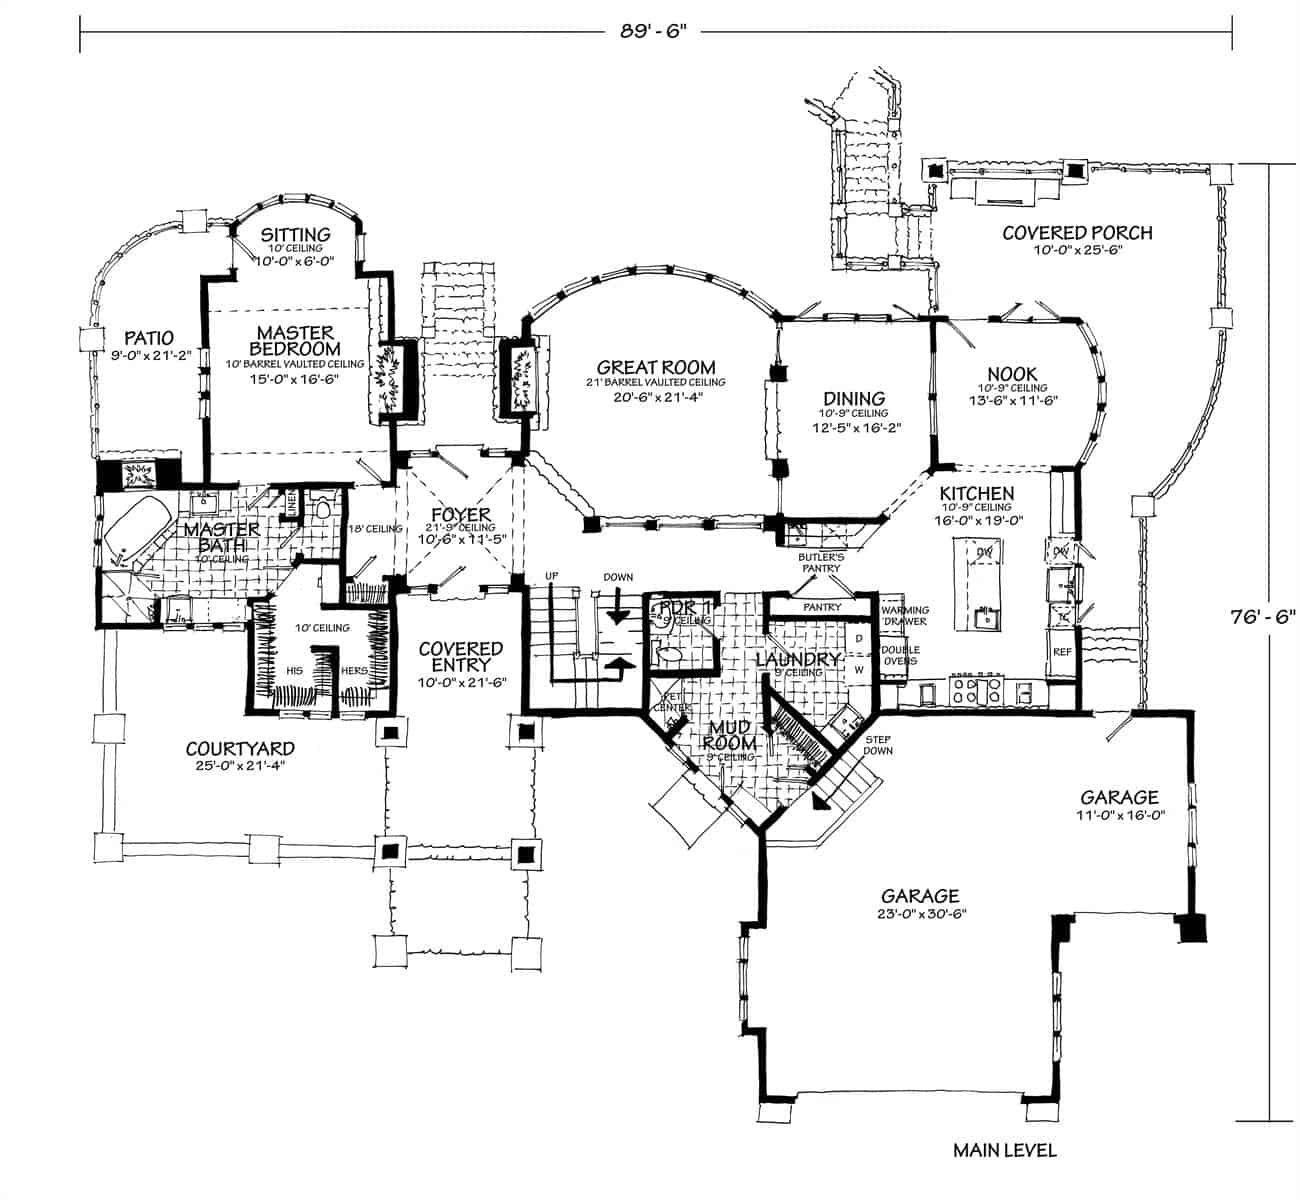 Main level floor plan of a three-story 4-bedroom Tamano contemporary style home with a courtyard, covered porches, great room, dining area, kitchen with breakfast nook, primary suite, and an L-shaped garage.